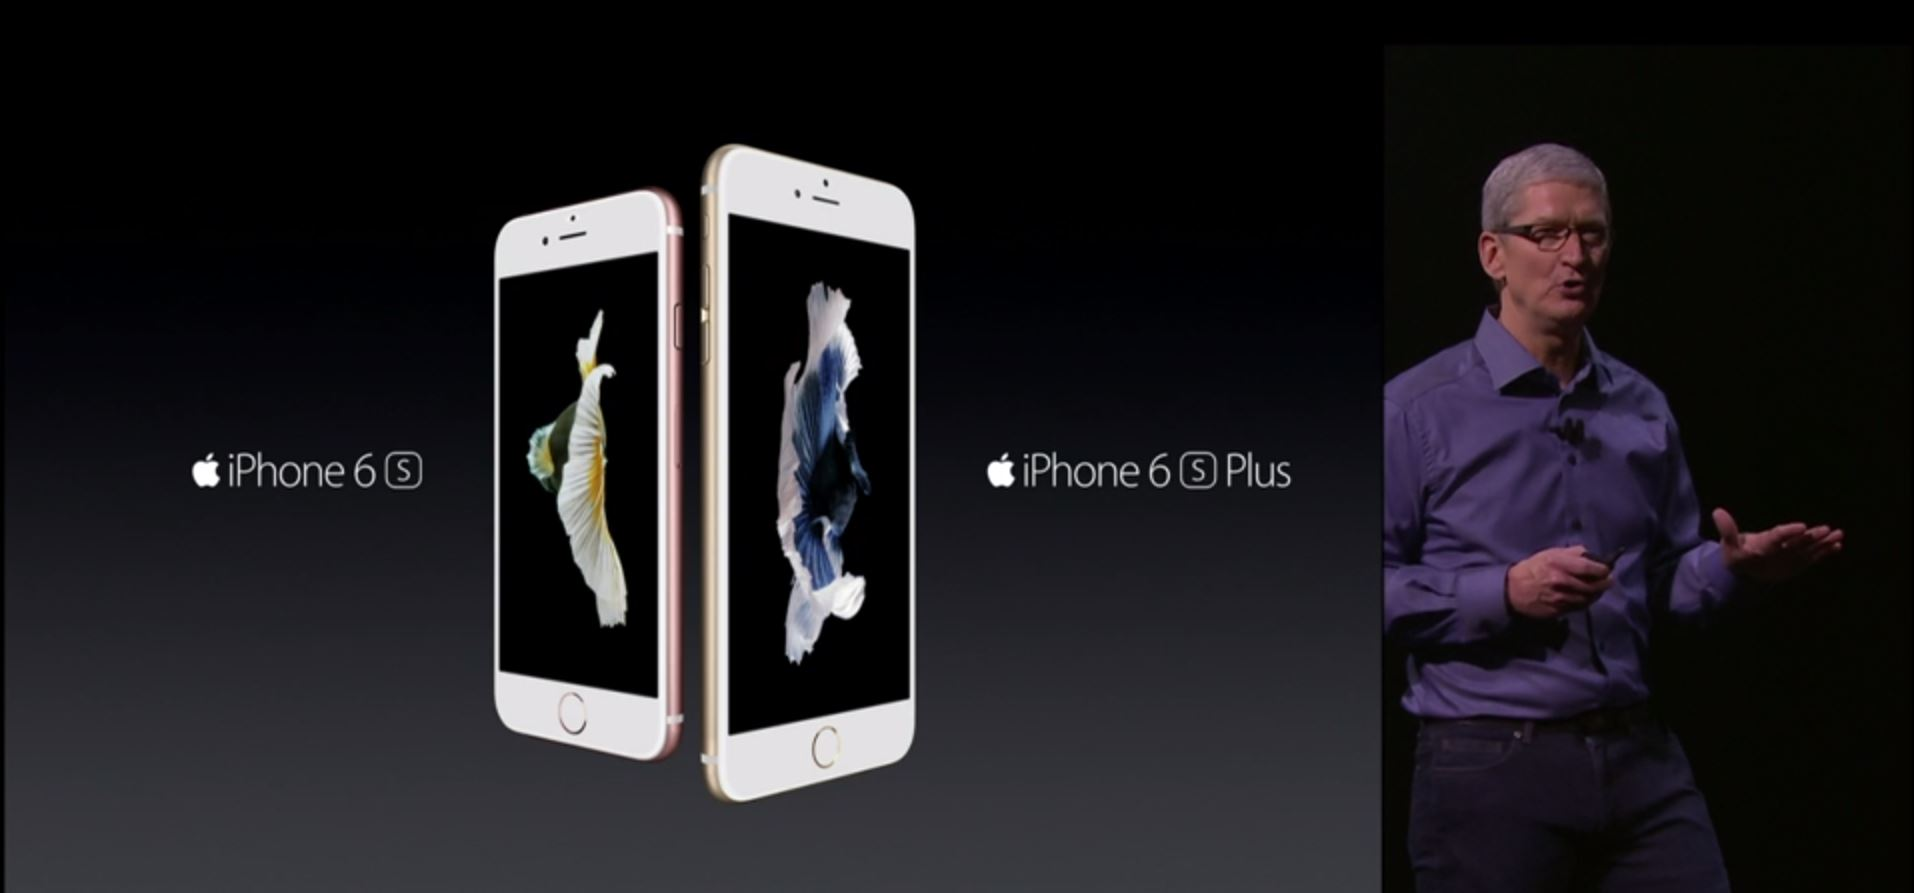 iPhone-6s-and-iPhone-6s-Plus